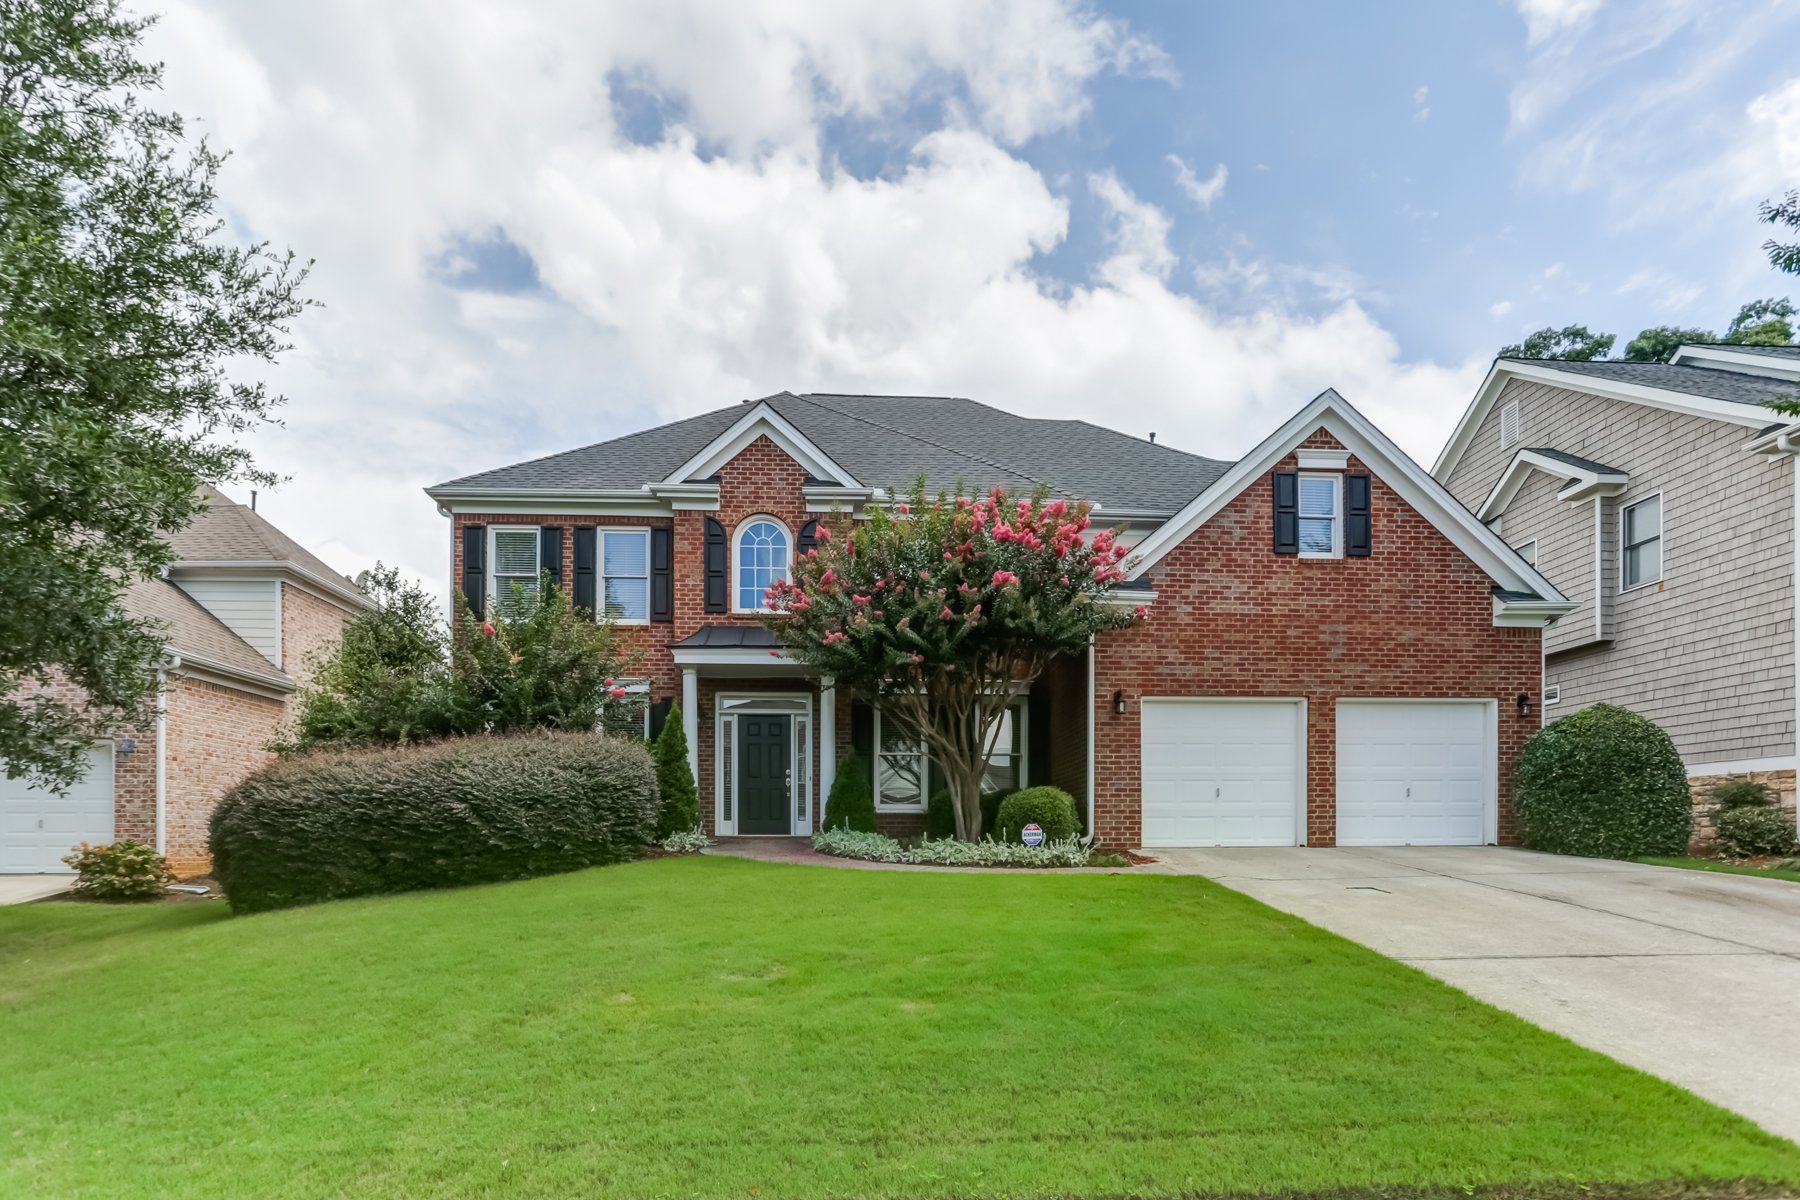 Single Family Home for Sale at Light-Filled Smyrna Beauty 1669 Harlington Road Smyrna, Georgia 30082 United States